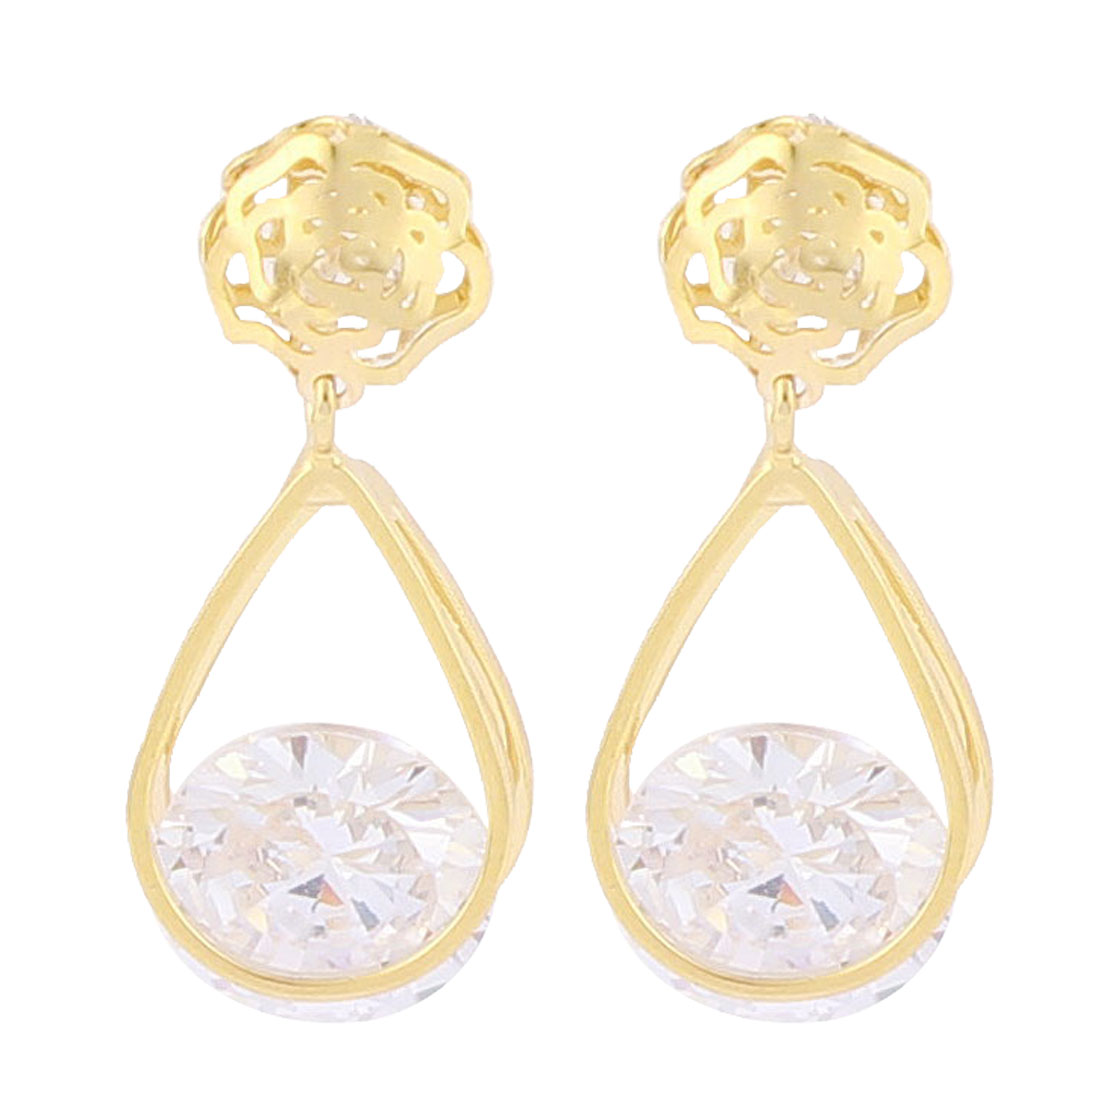 Faux Rhinestone Pandent Detail Hollow out Flower Stud Earrings Ear Pins Nails Gold Tone Pair for Woman